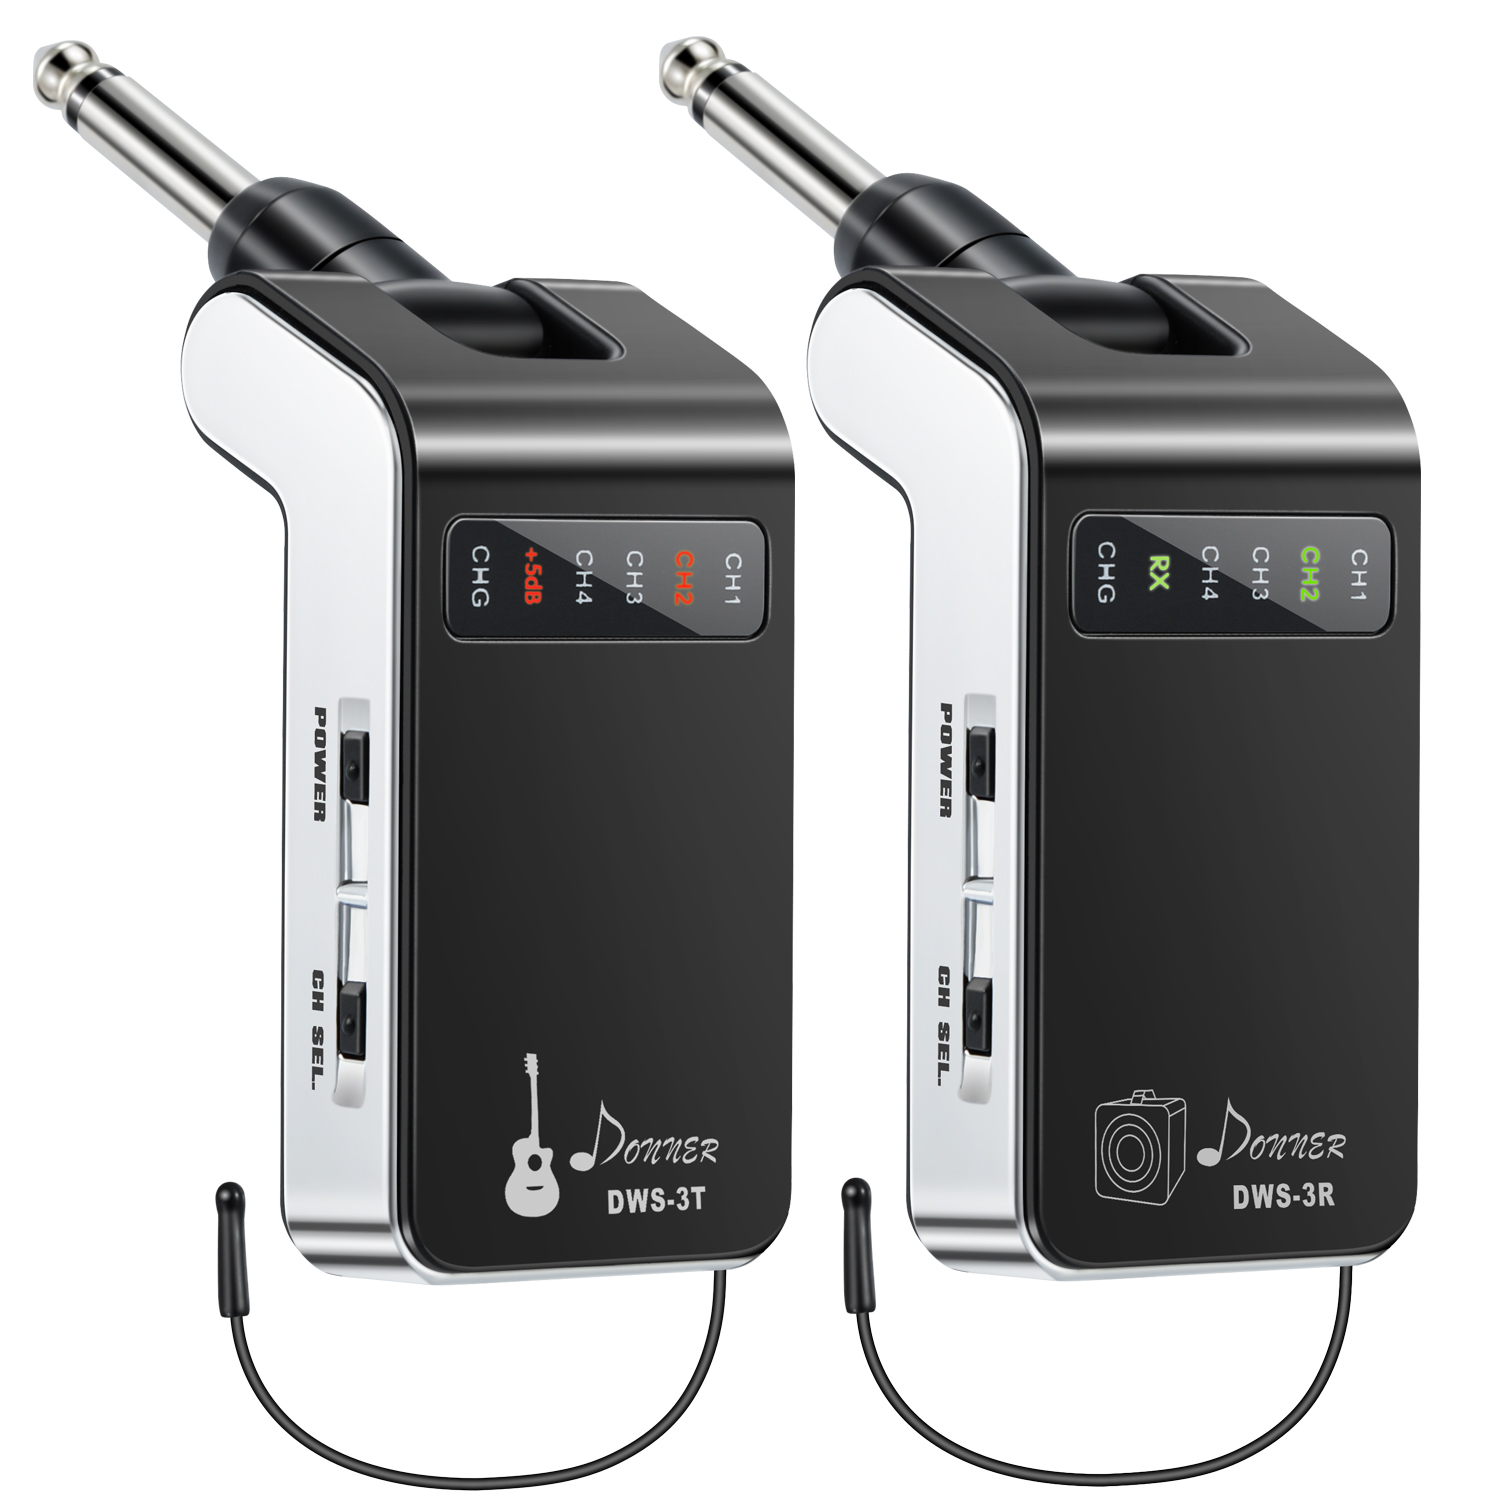 New Version Donner Rechargeable Wireless Guitar System DWS-3 Digital Guitar Bass Audio Transmitter and Receiver